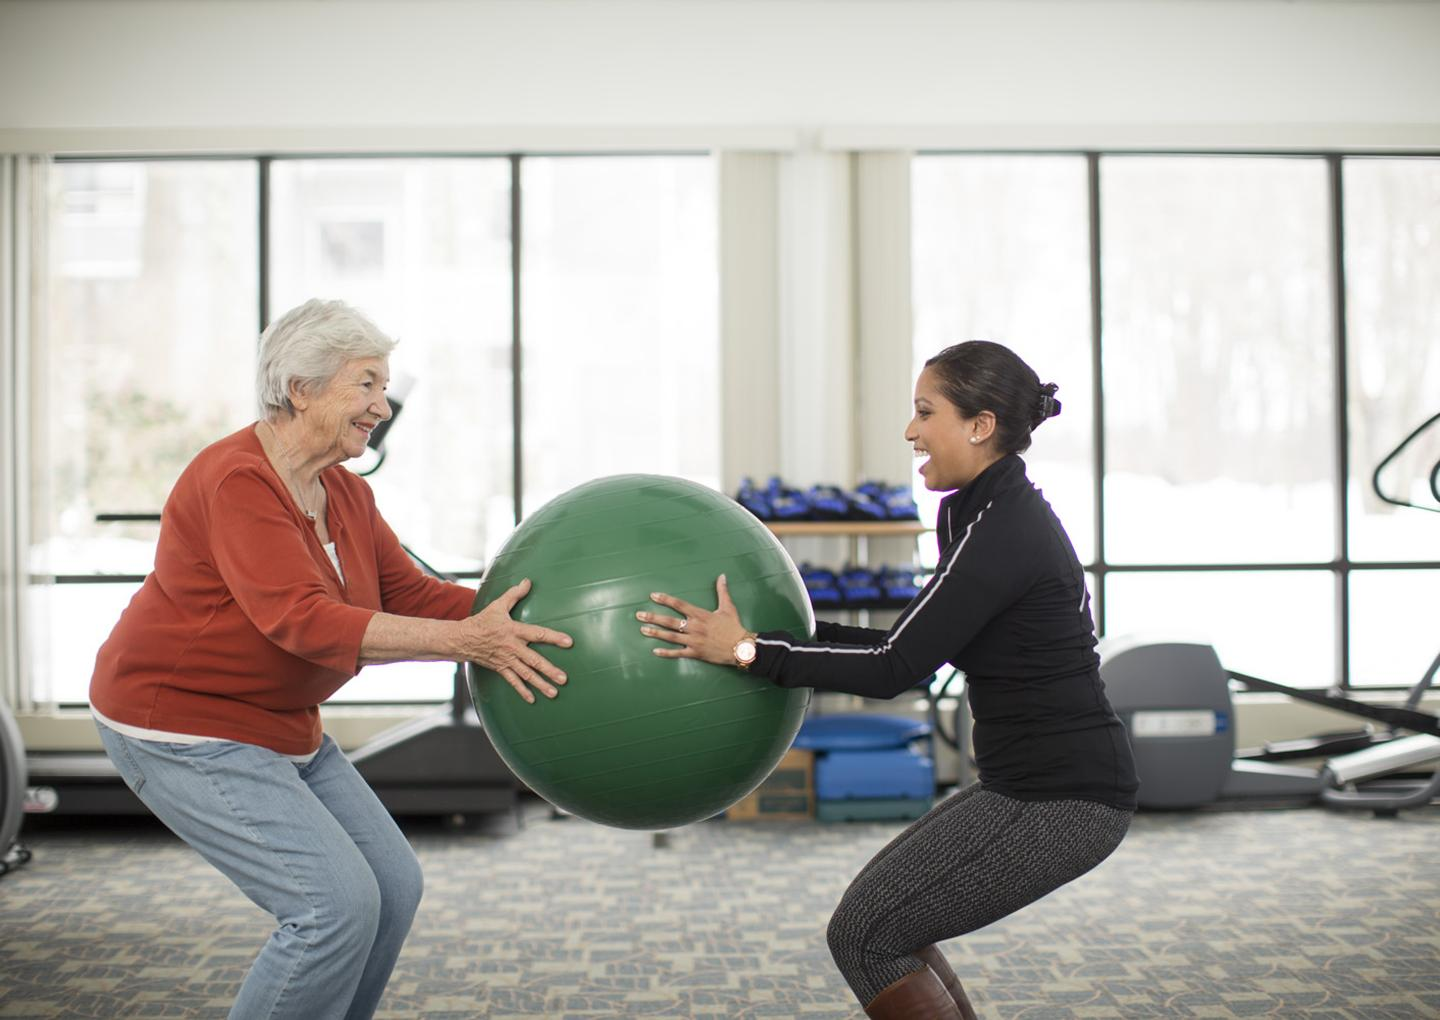 An older woman on the left and younger woman on the right stand facing each other, standing in a squat position, holding a large exercise ball between them. They are in a gym with large windows and exercise equipment in the background.